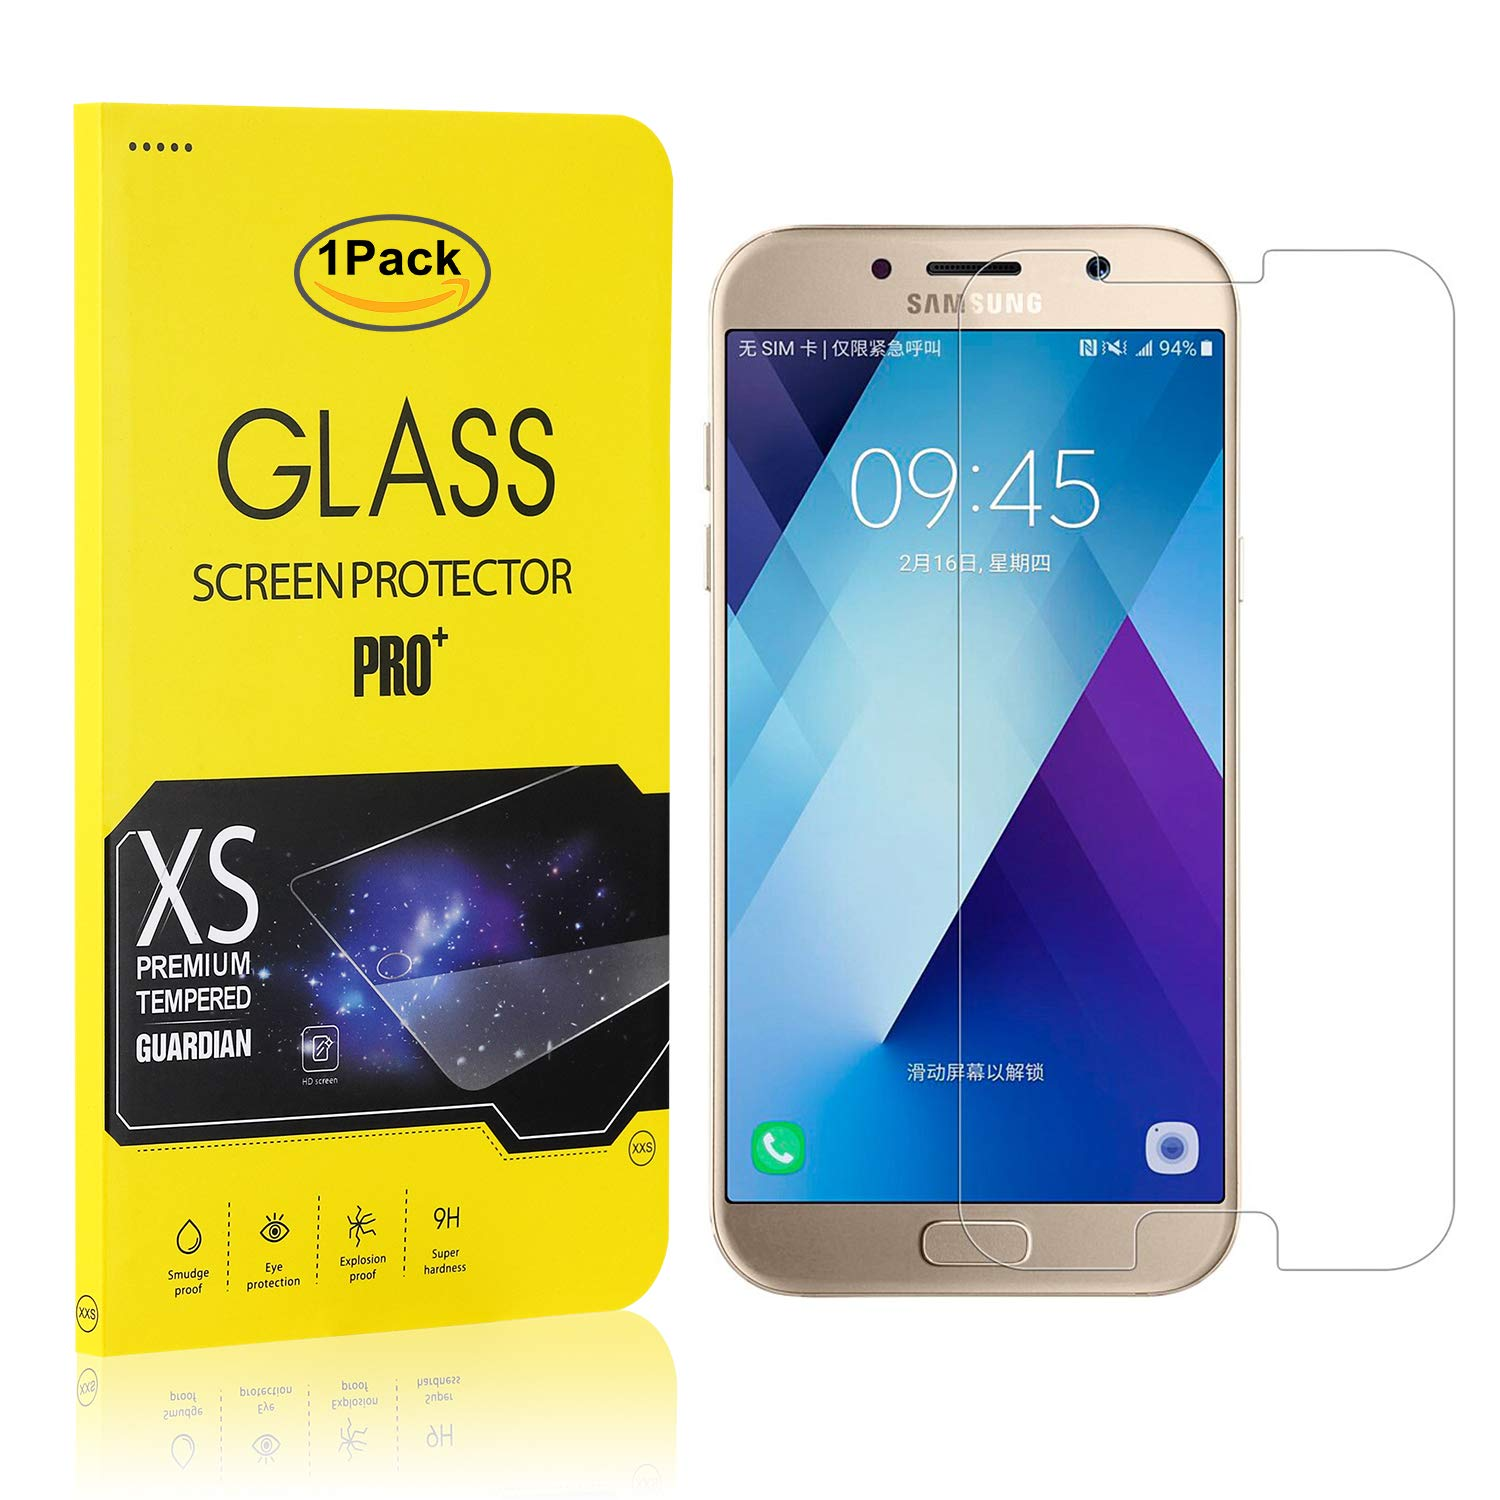 Bubble Free 1 Pack Easy Installation Galaxy A5 2017 Tempered Glass Screen Protector The Grafu High Transparency Screen Protector for Samsung Galaxy A5 2017